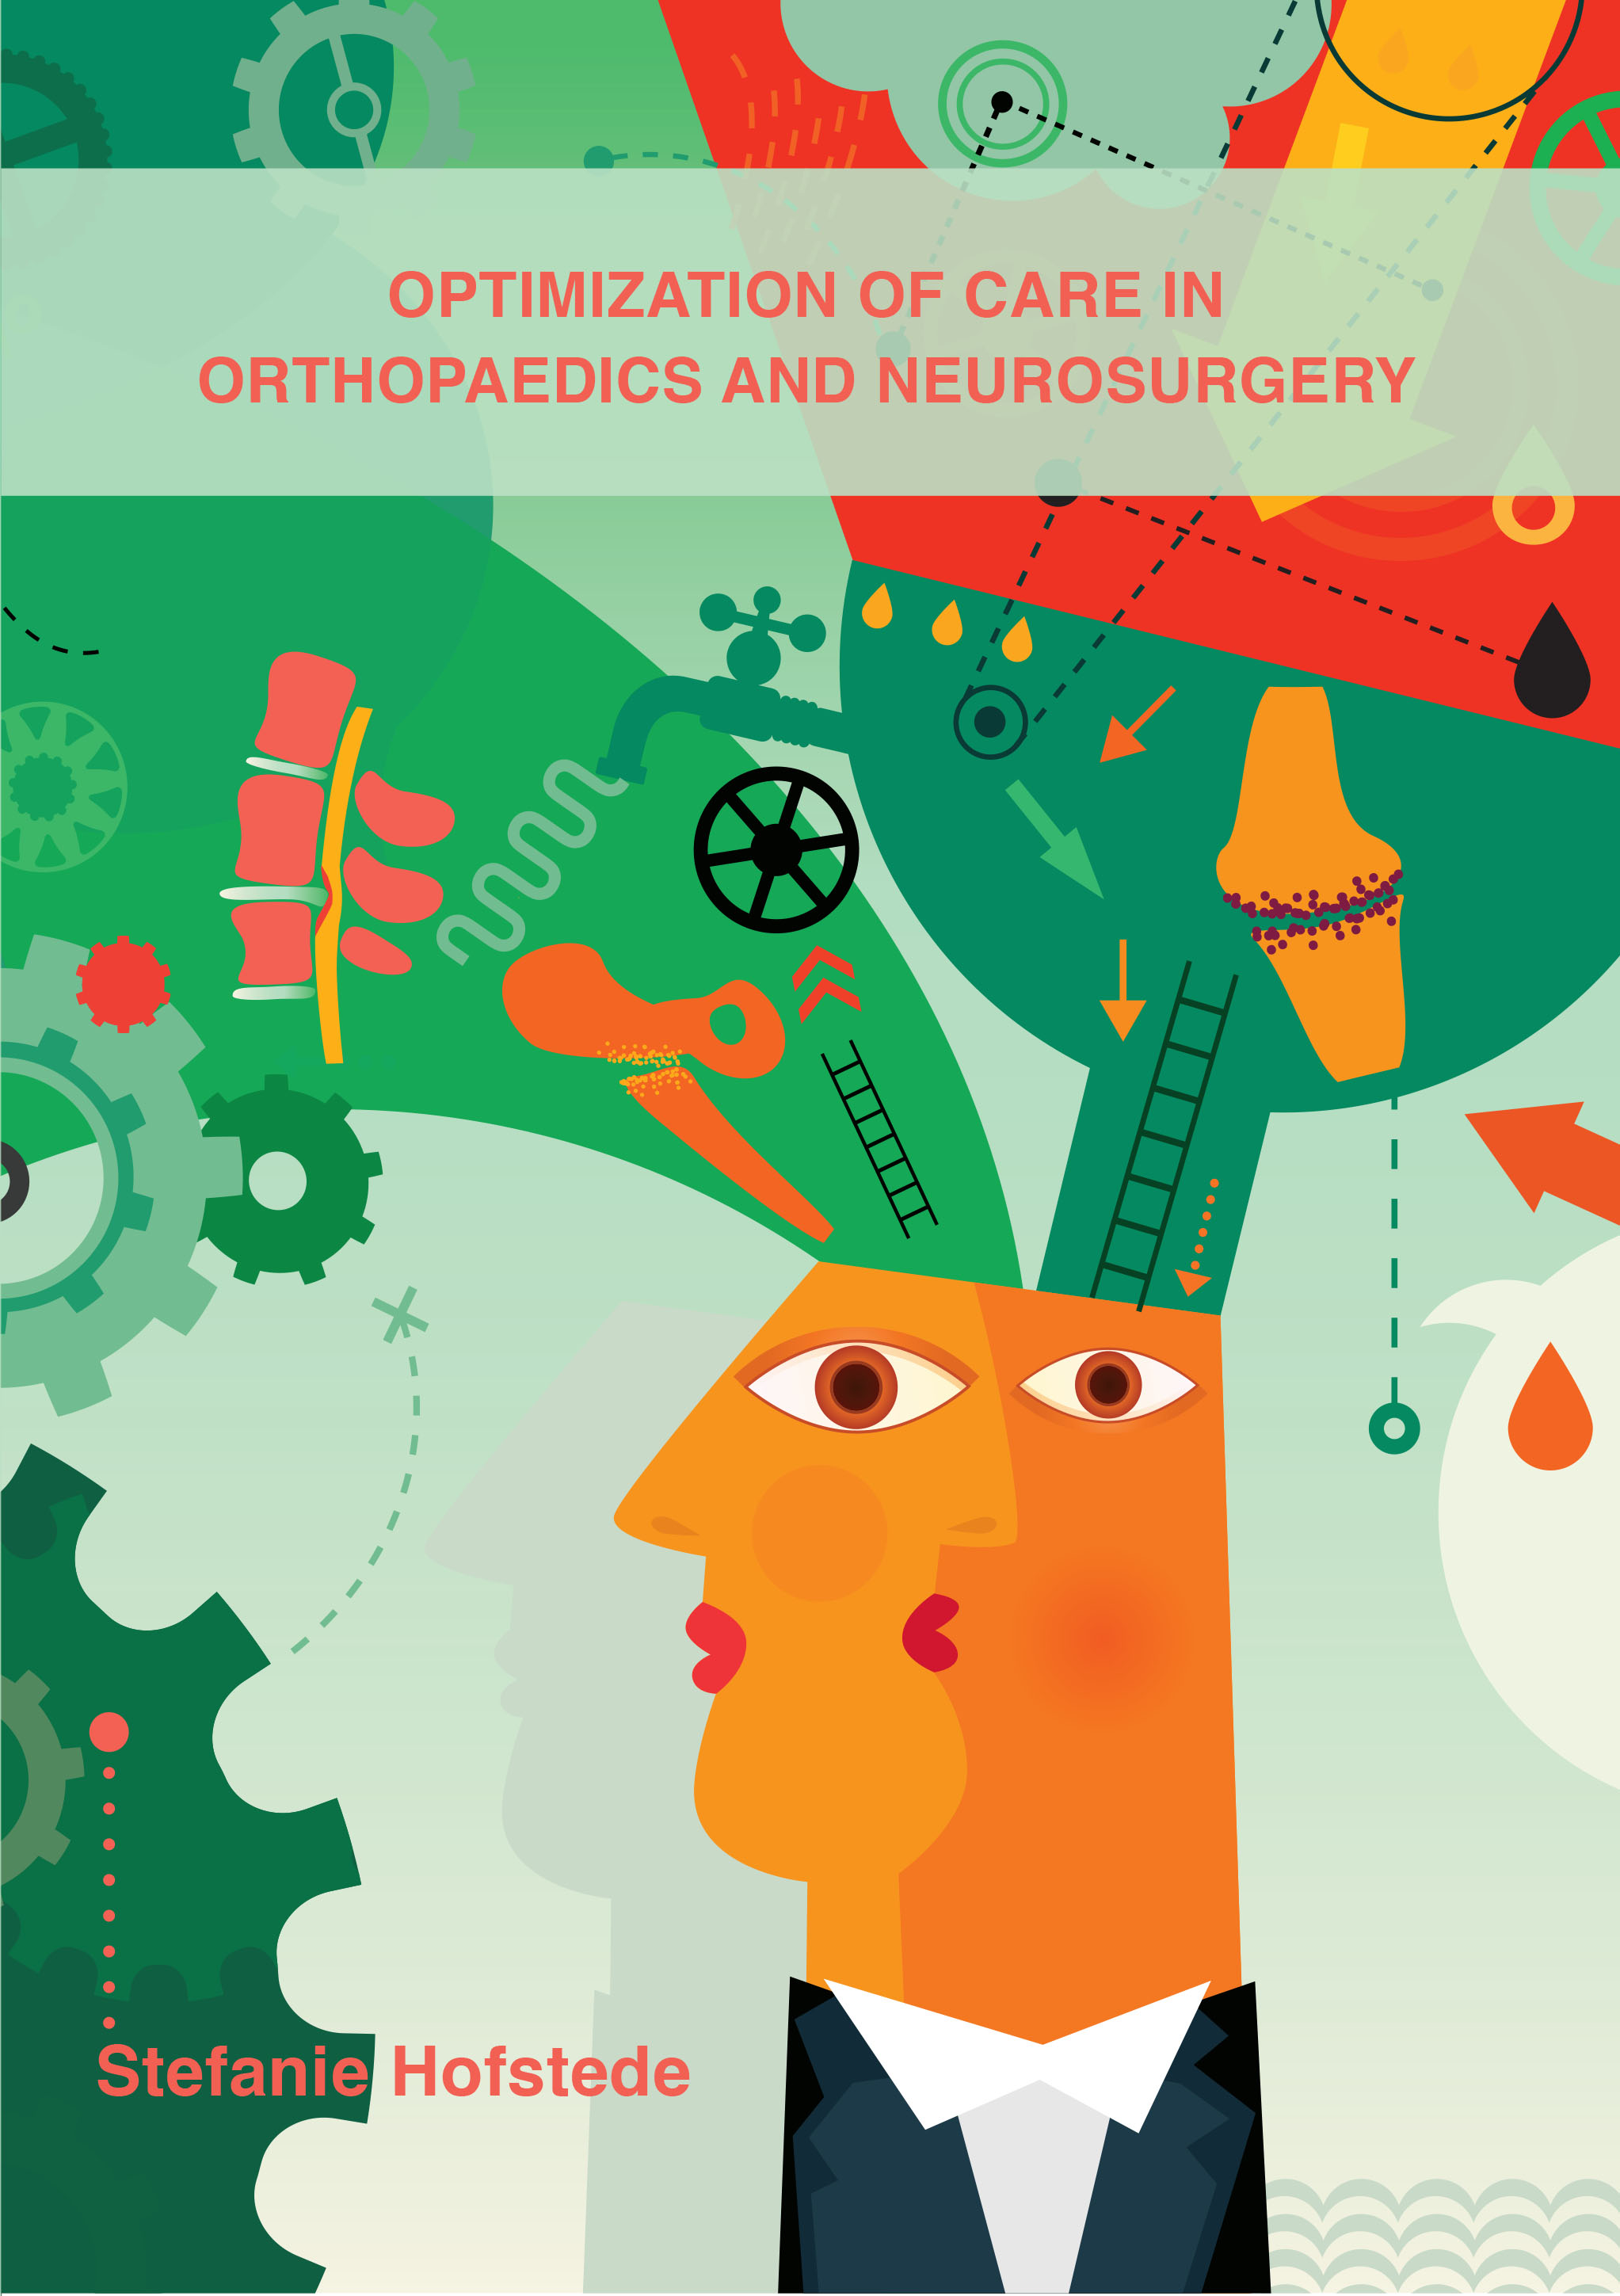 Optimization of Care in Orthopaedics and Neurosurgery